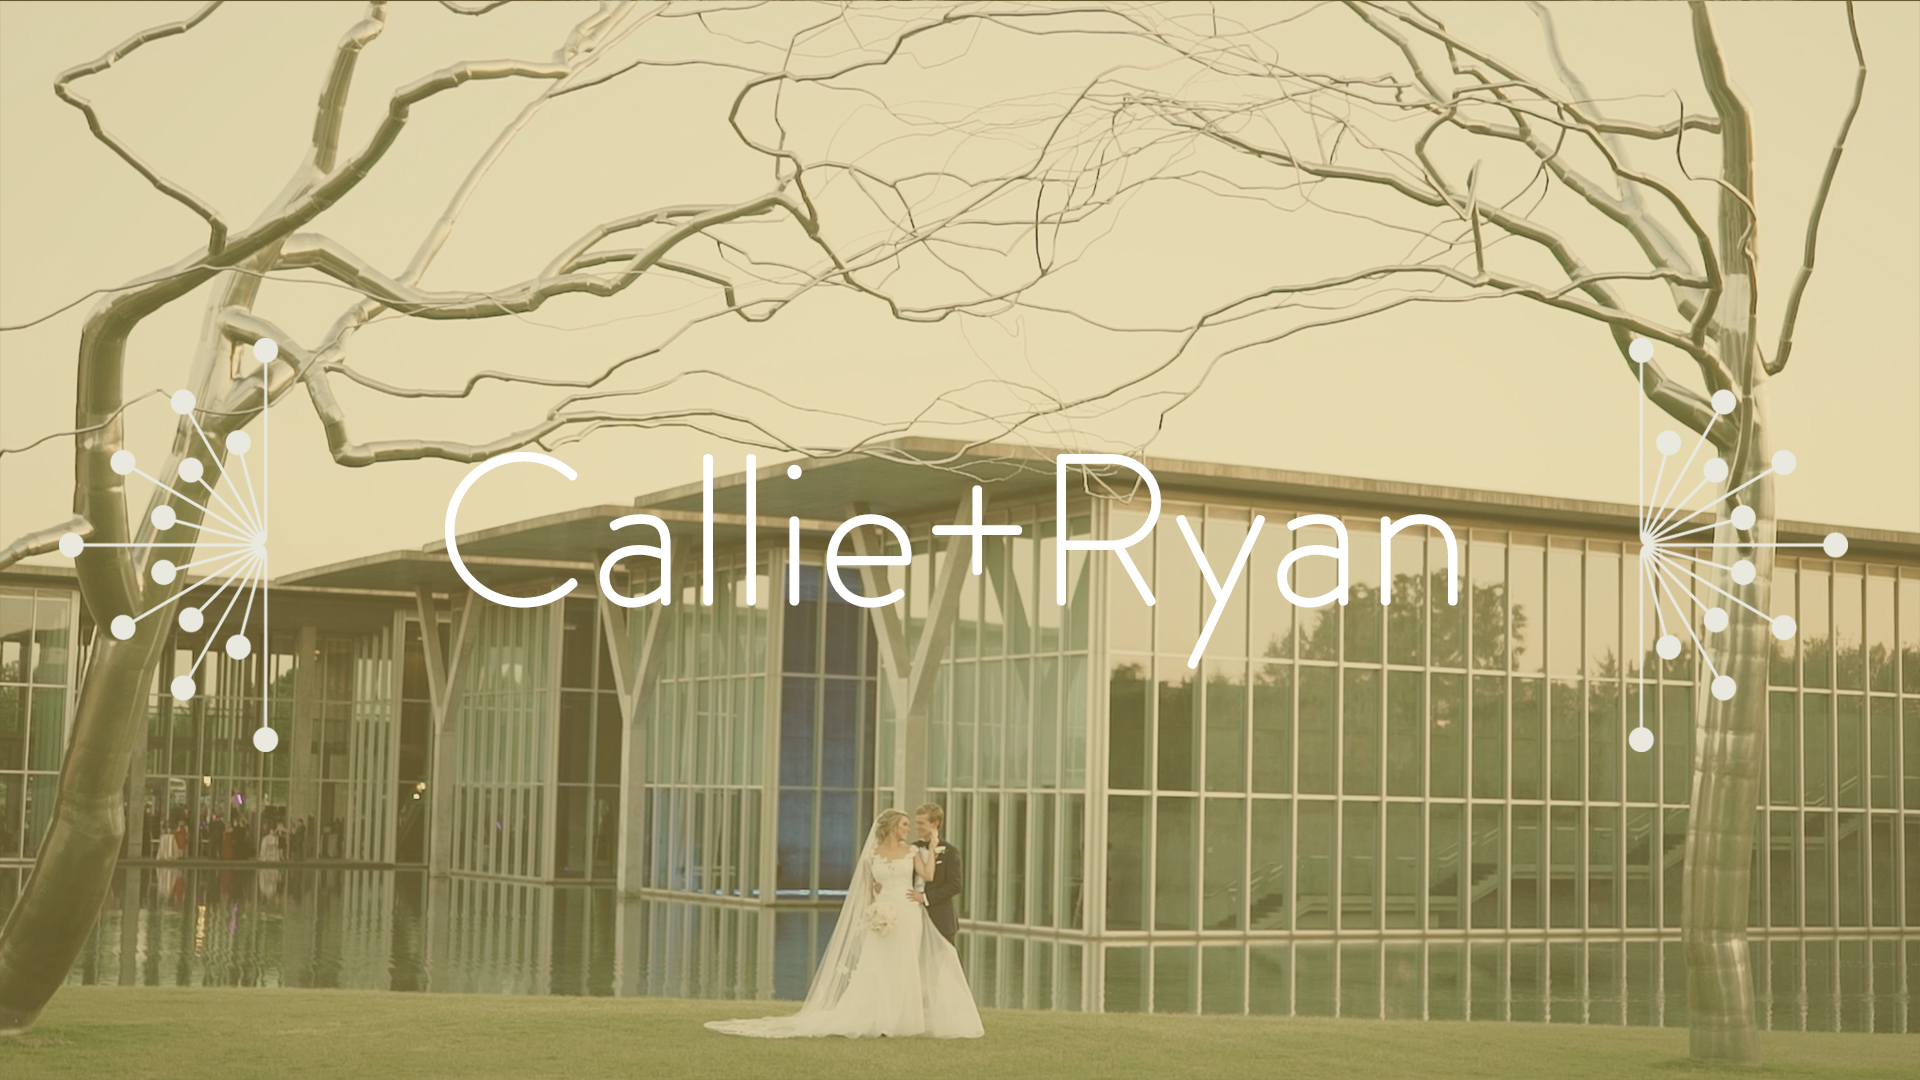 Callie + Ryan | Fort Worth, Texas | Fort Worth Modern Art